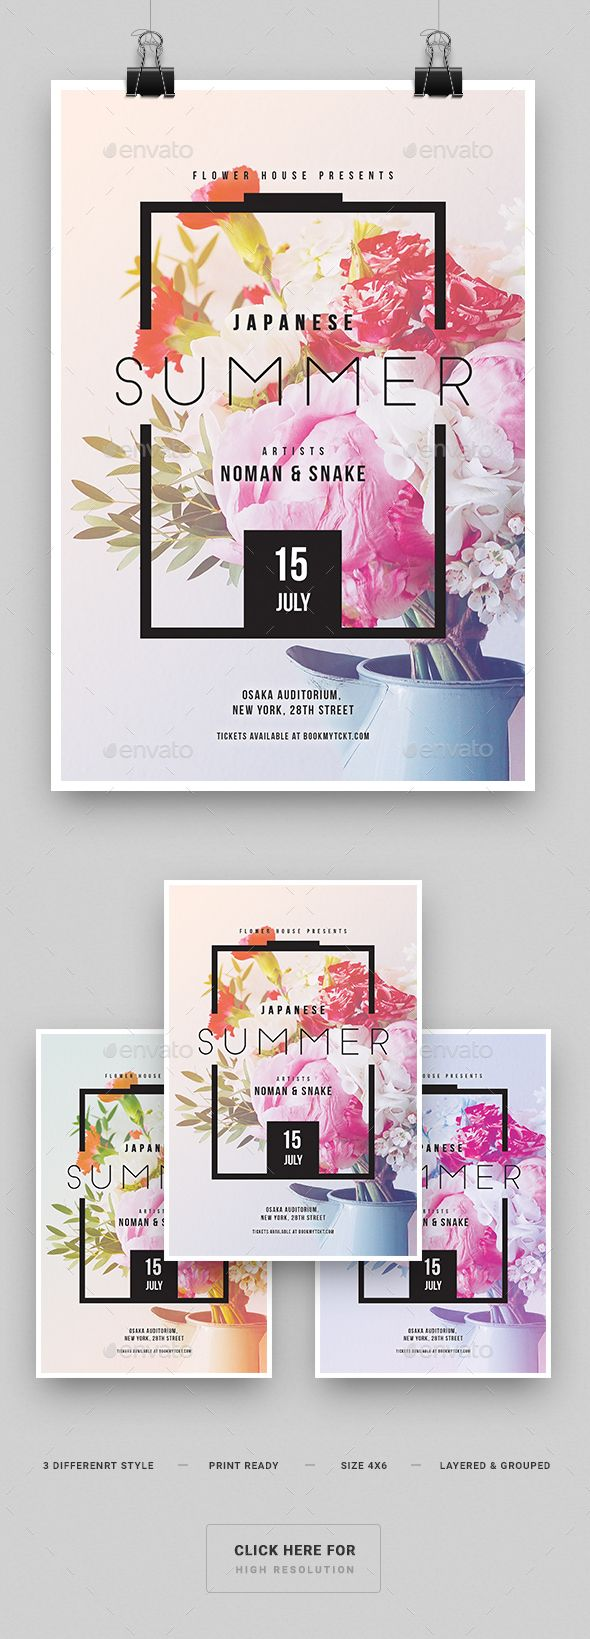 Japanese Summer Party Flyer  - PSD Template • Only available here ➝ graphicr...